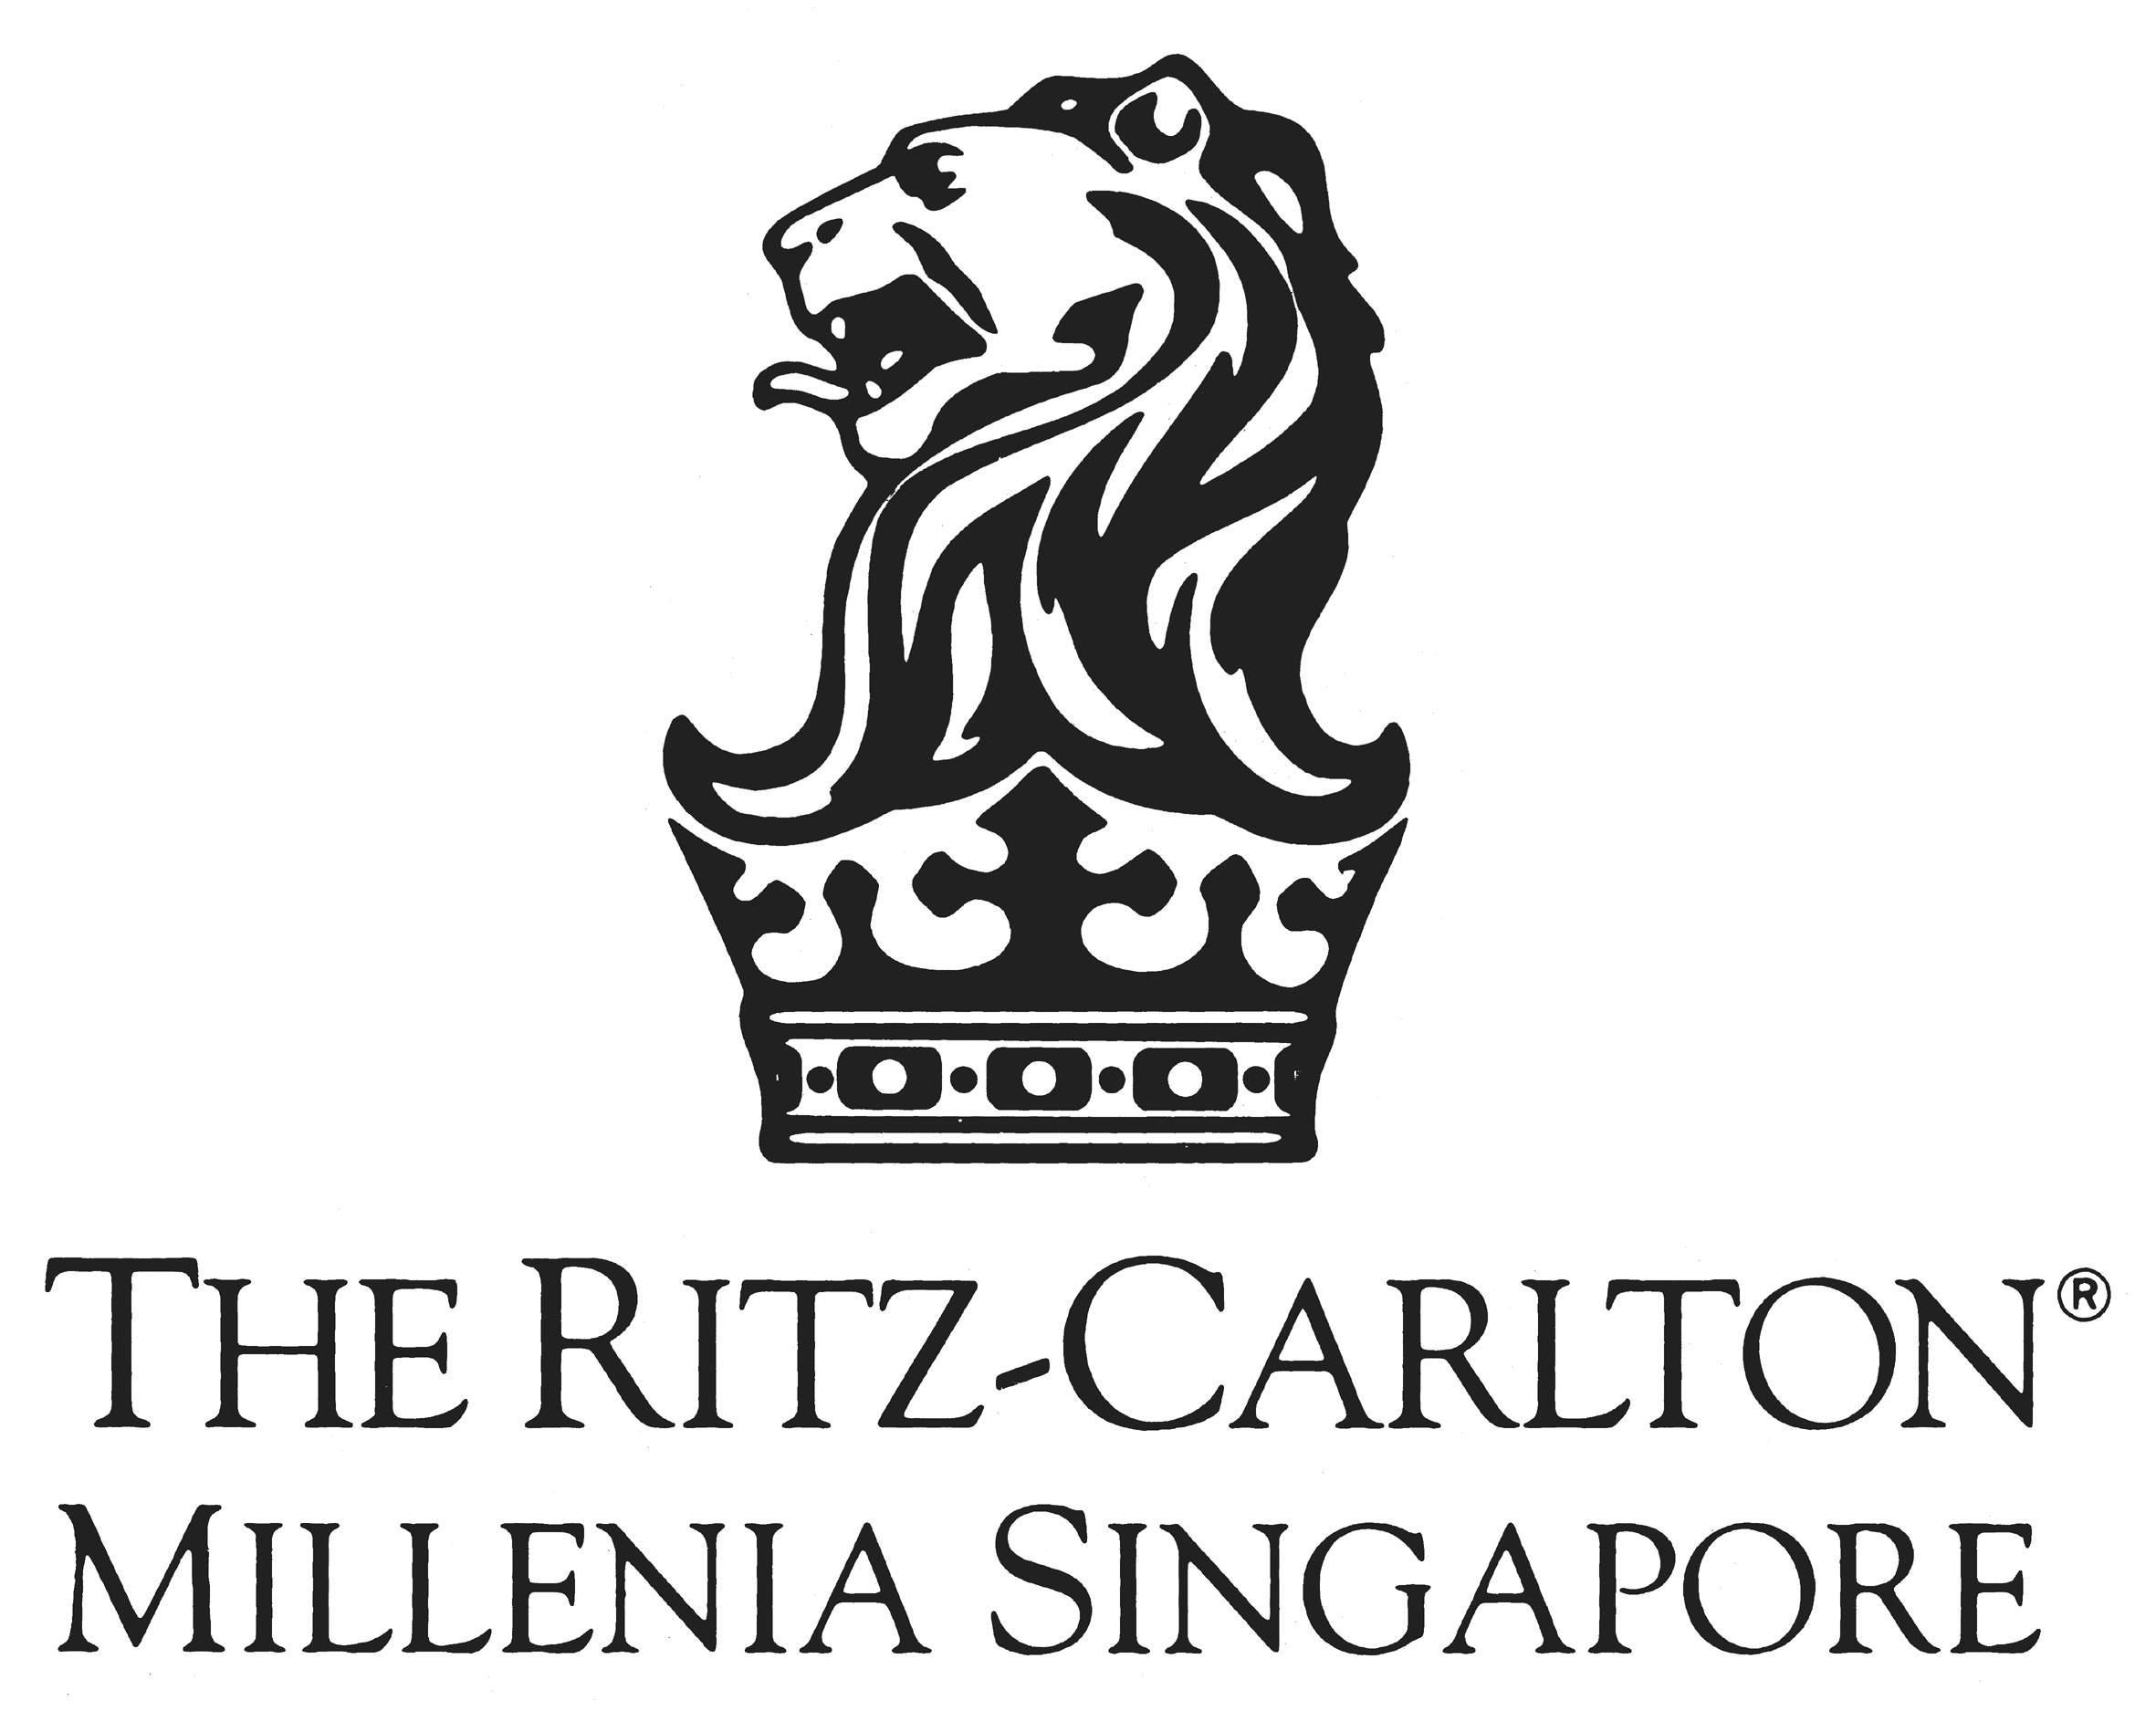 The-Ritz-Carlton-Millenia-Singapore-logo